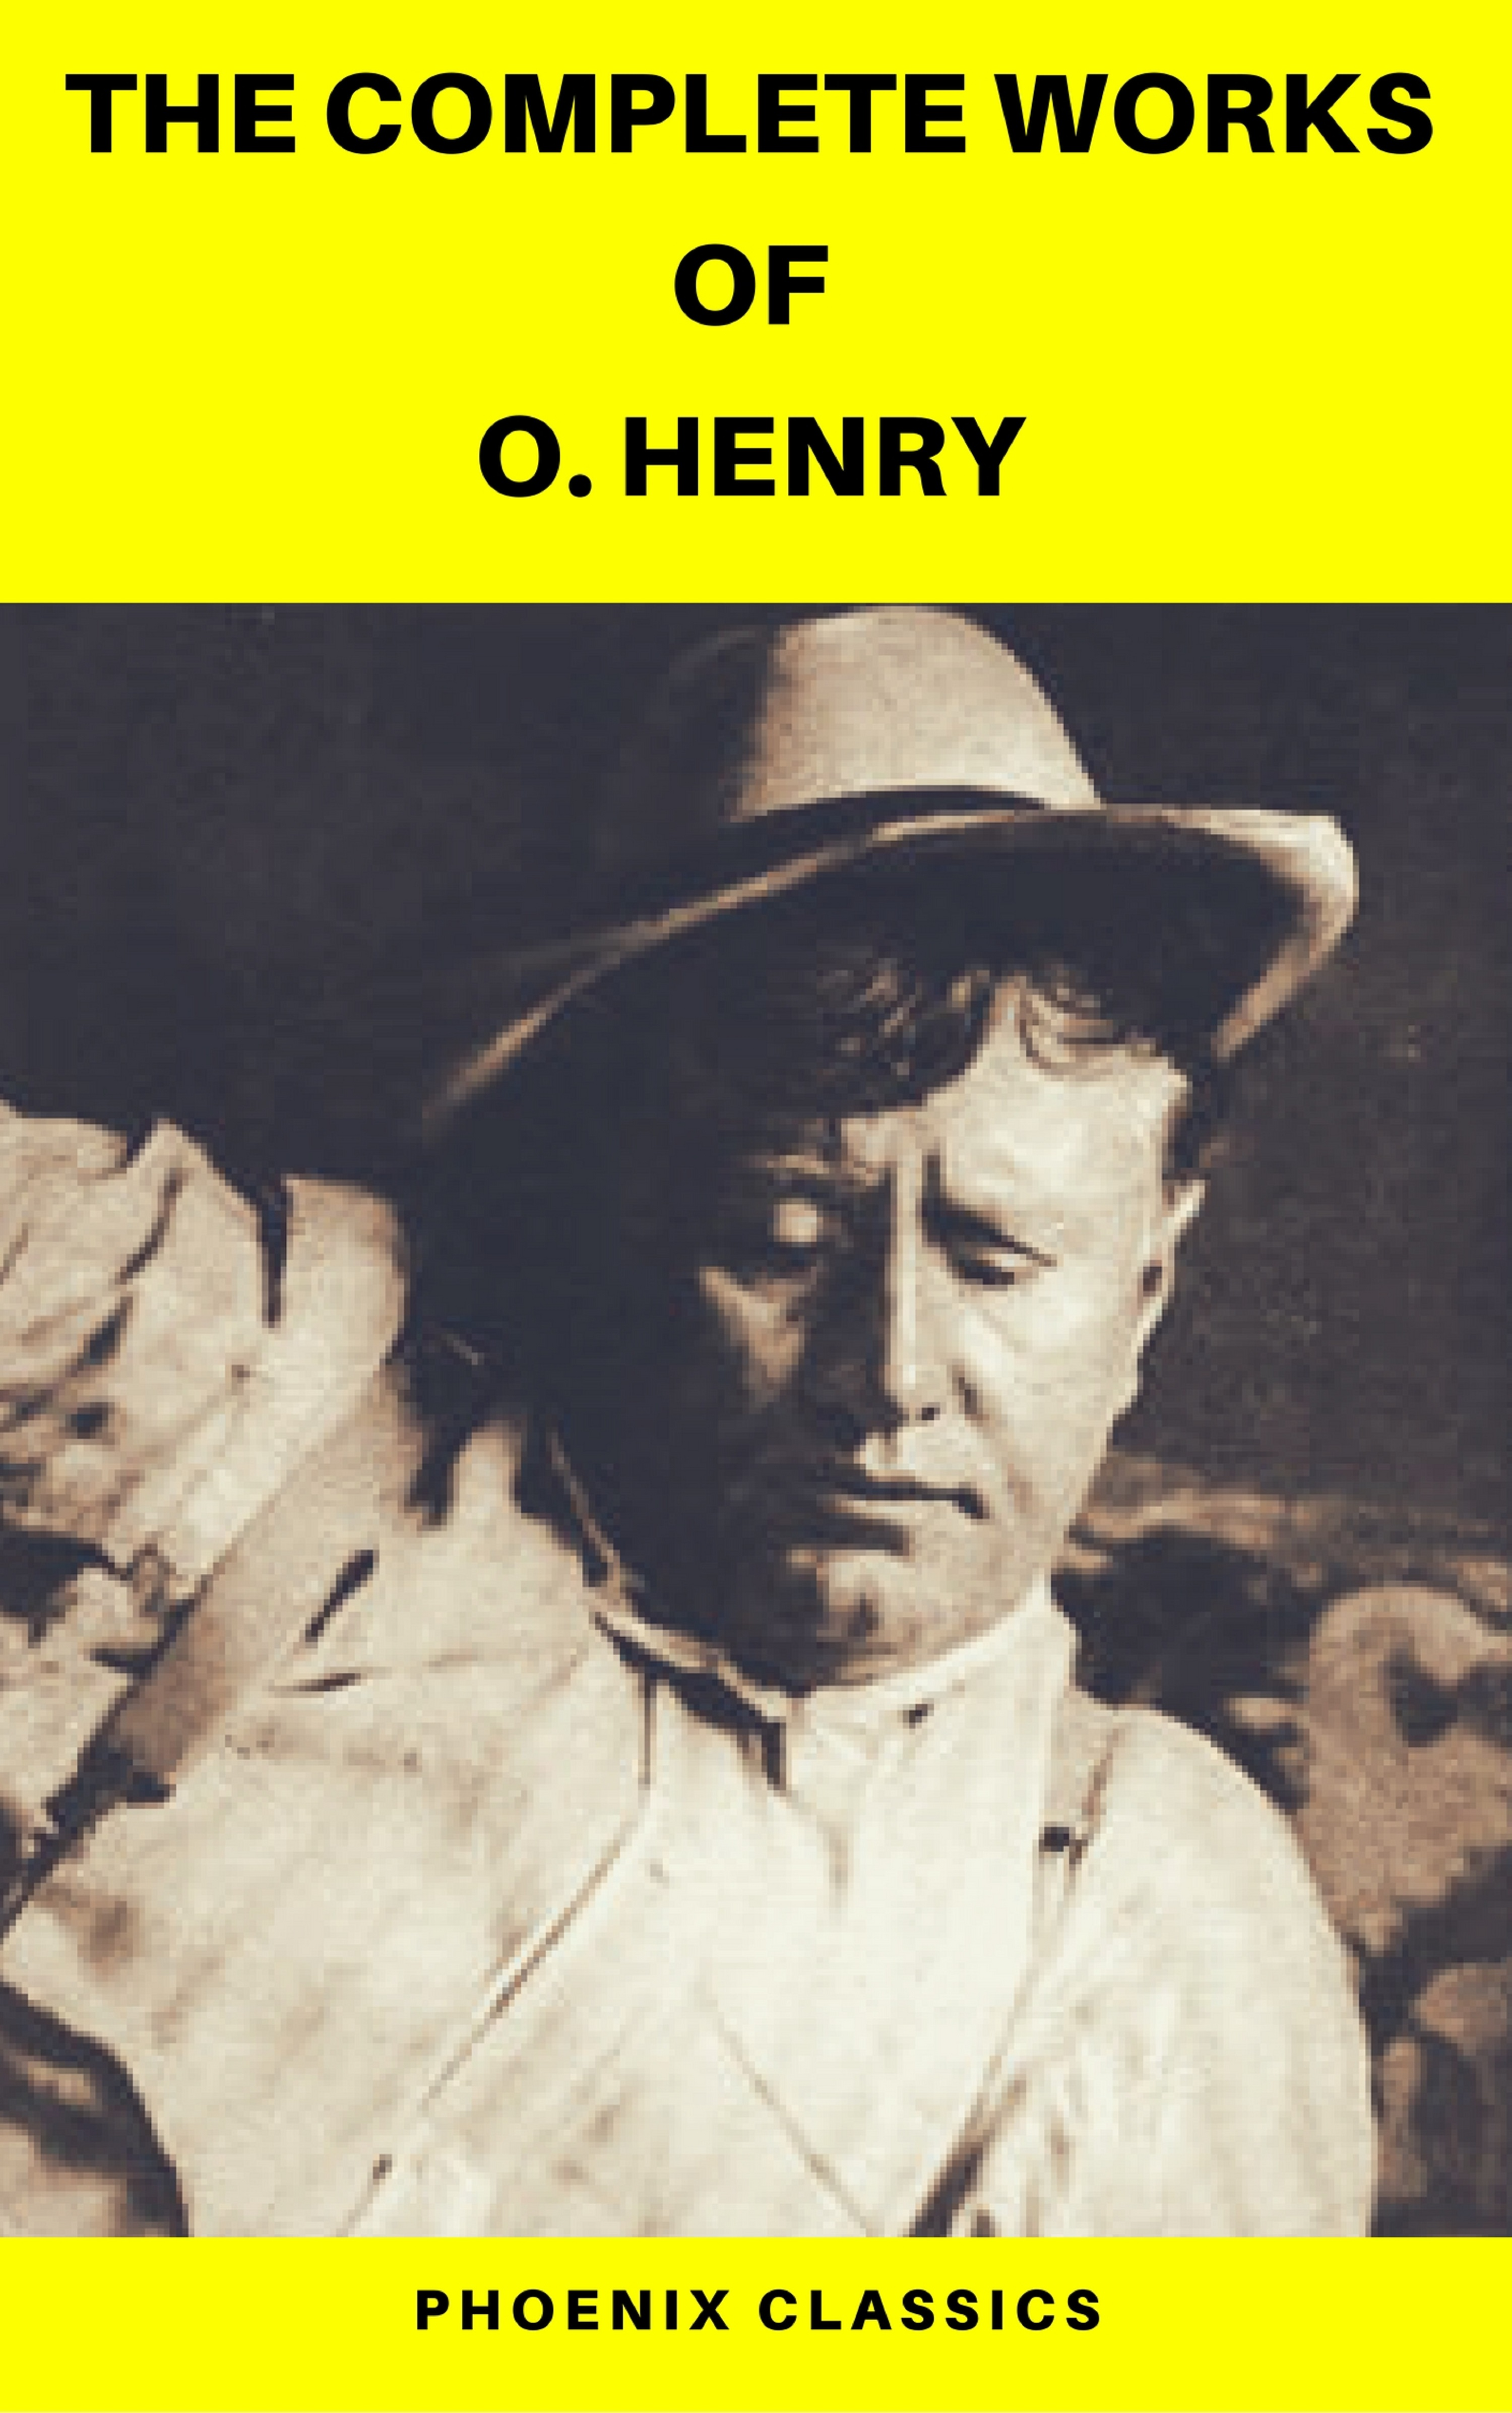 O. Hooper Henry The Complete Works of O. Henry: Short Stories, Poems and Letters (Phoenix Classics)